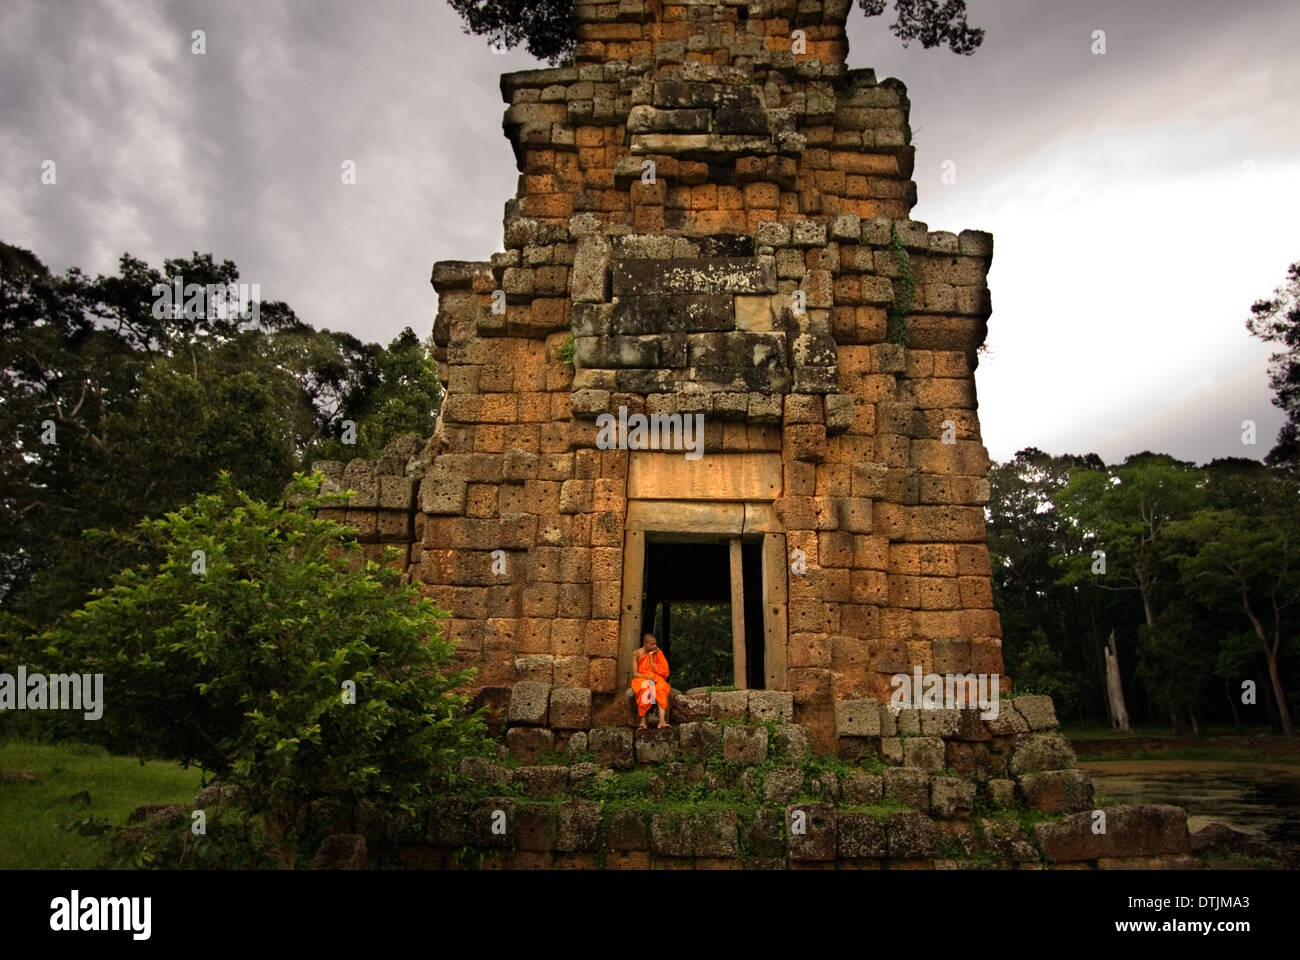 Buddhist Monk at the Temples of  Kleangs & Prasat Suor Prat. Angkor Thom. Rectangular sandstone building set opposite the Terrac - Stock Image